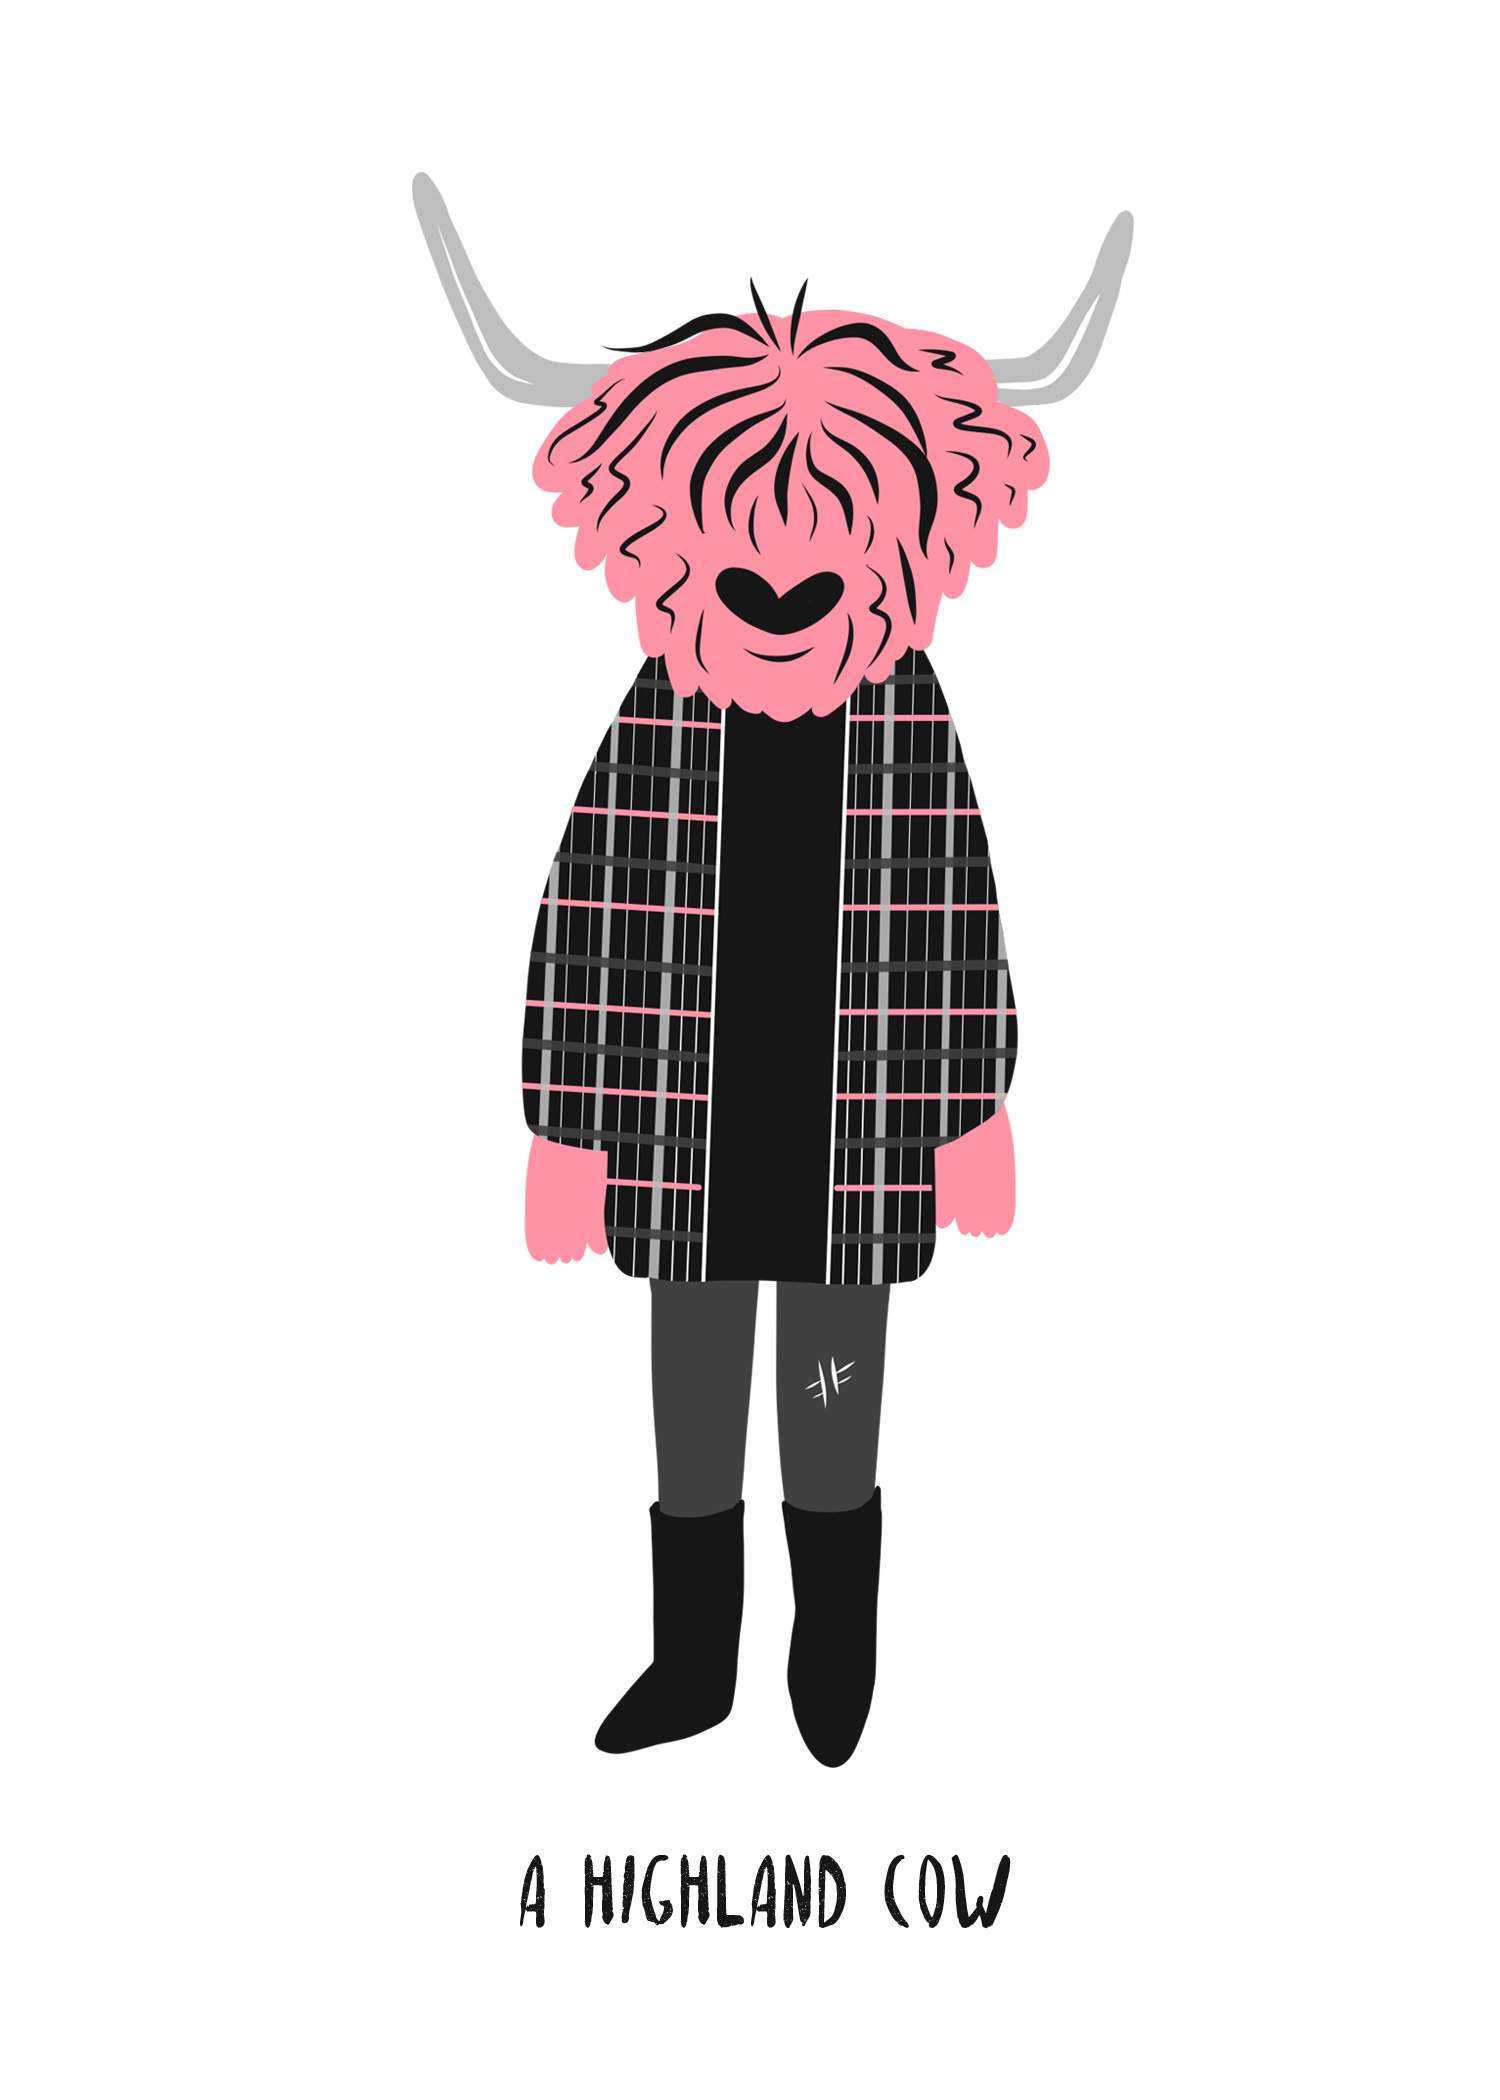 Dress Like a Highland Cow